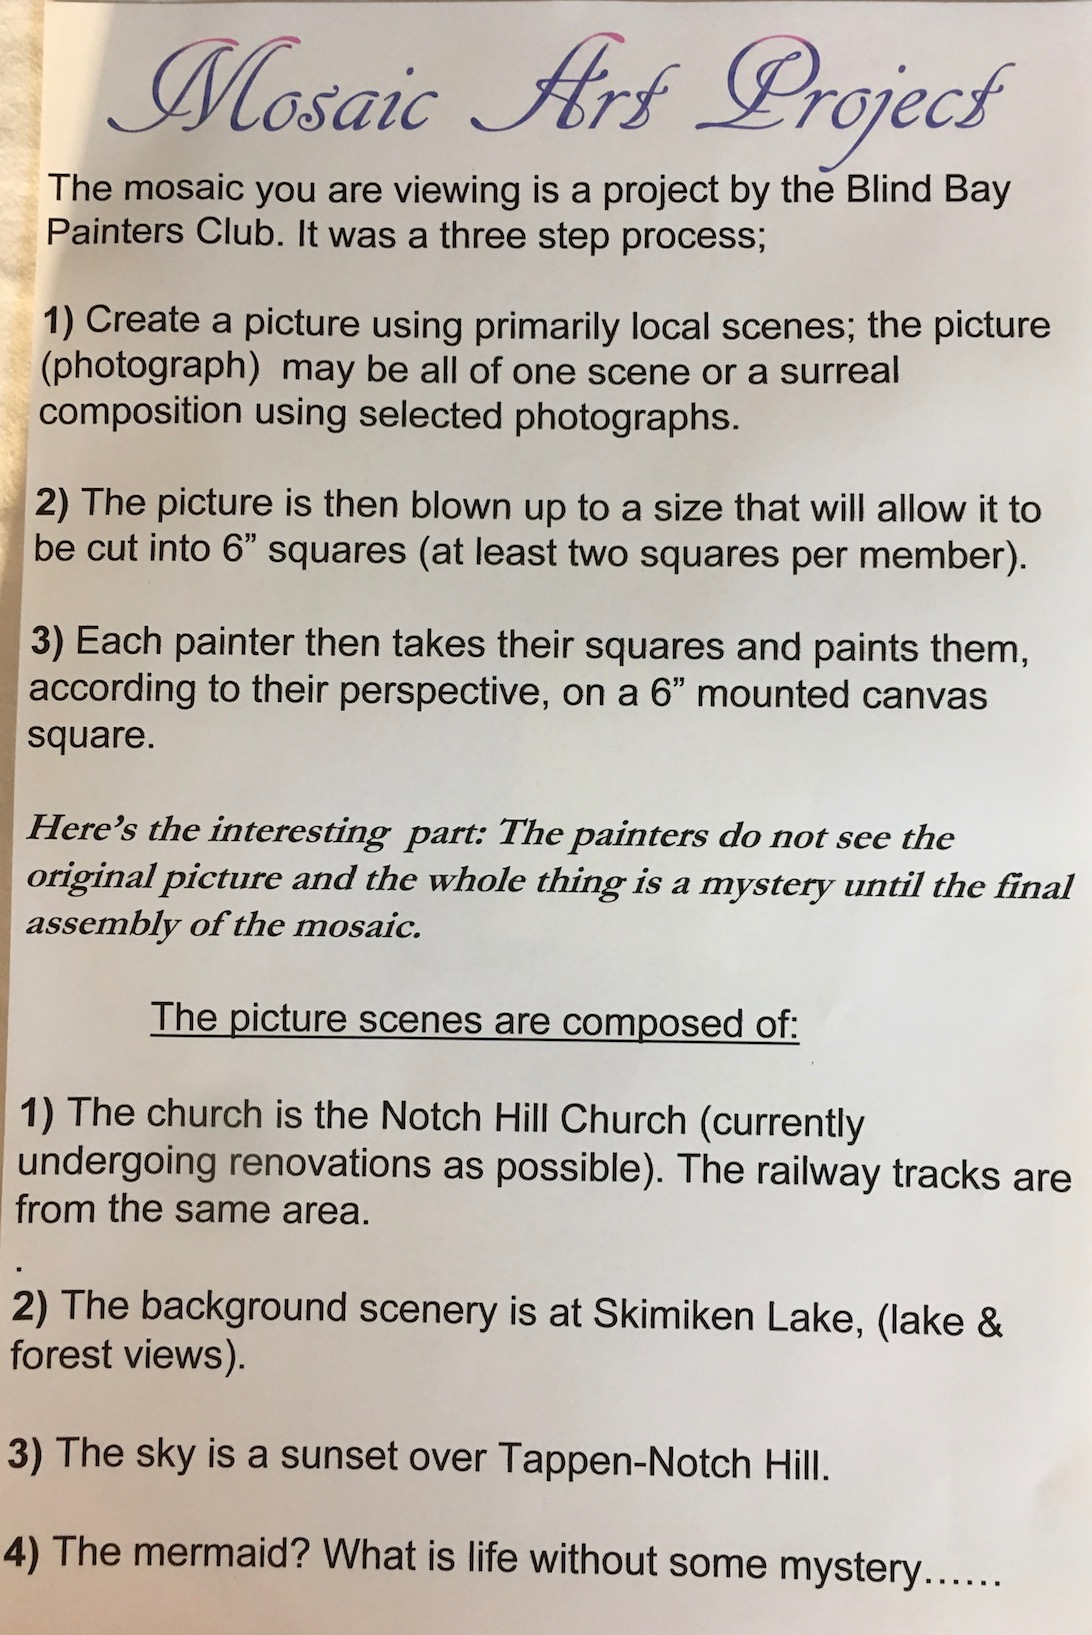 Mosaic Art Project Explanation